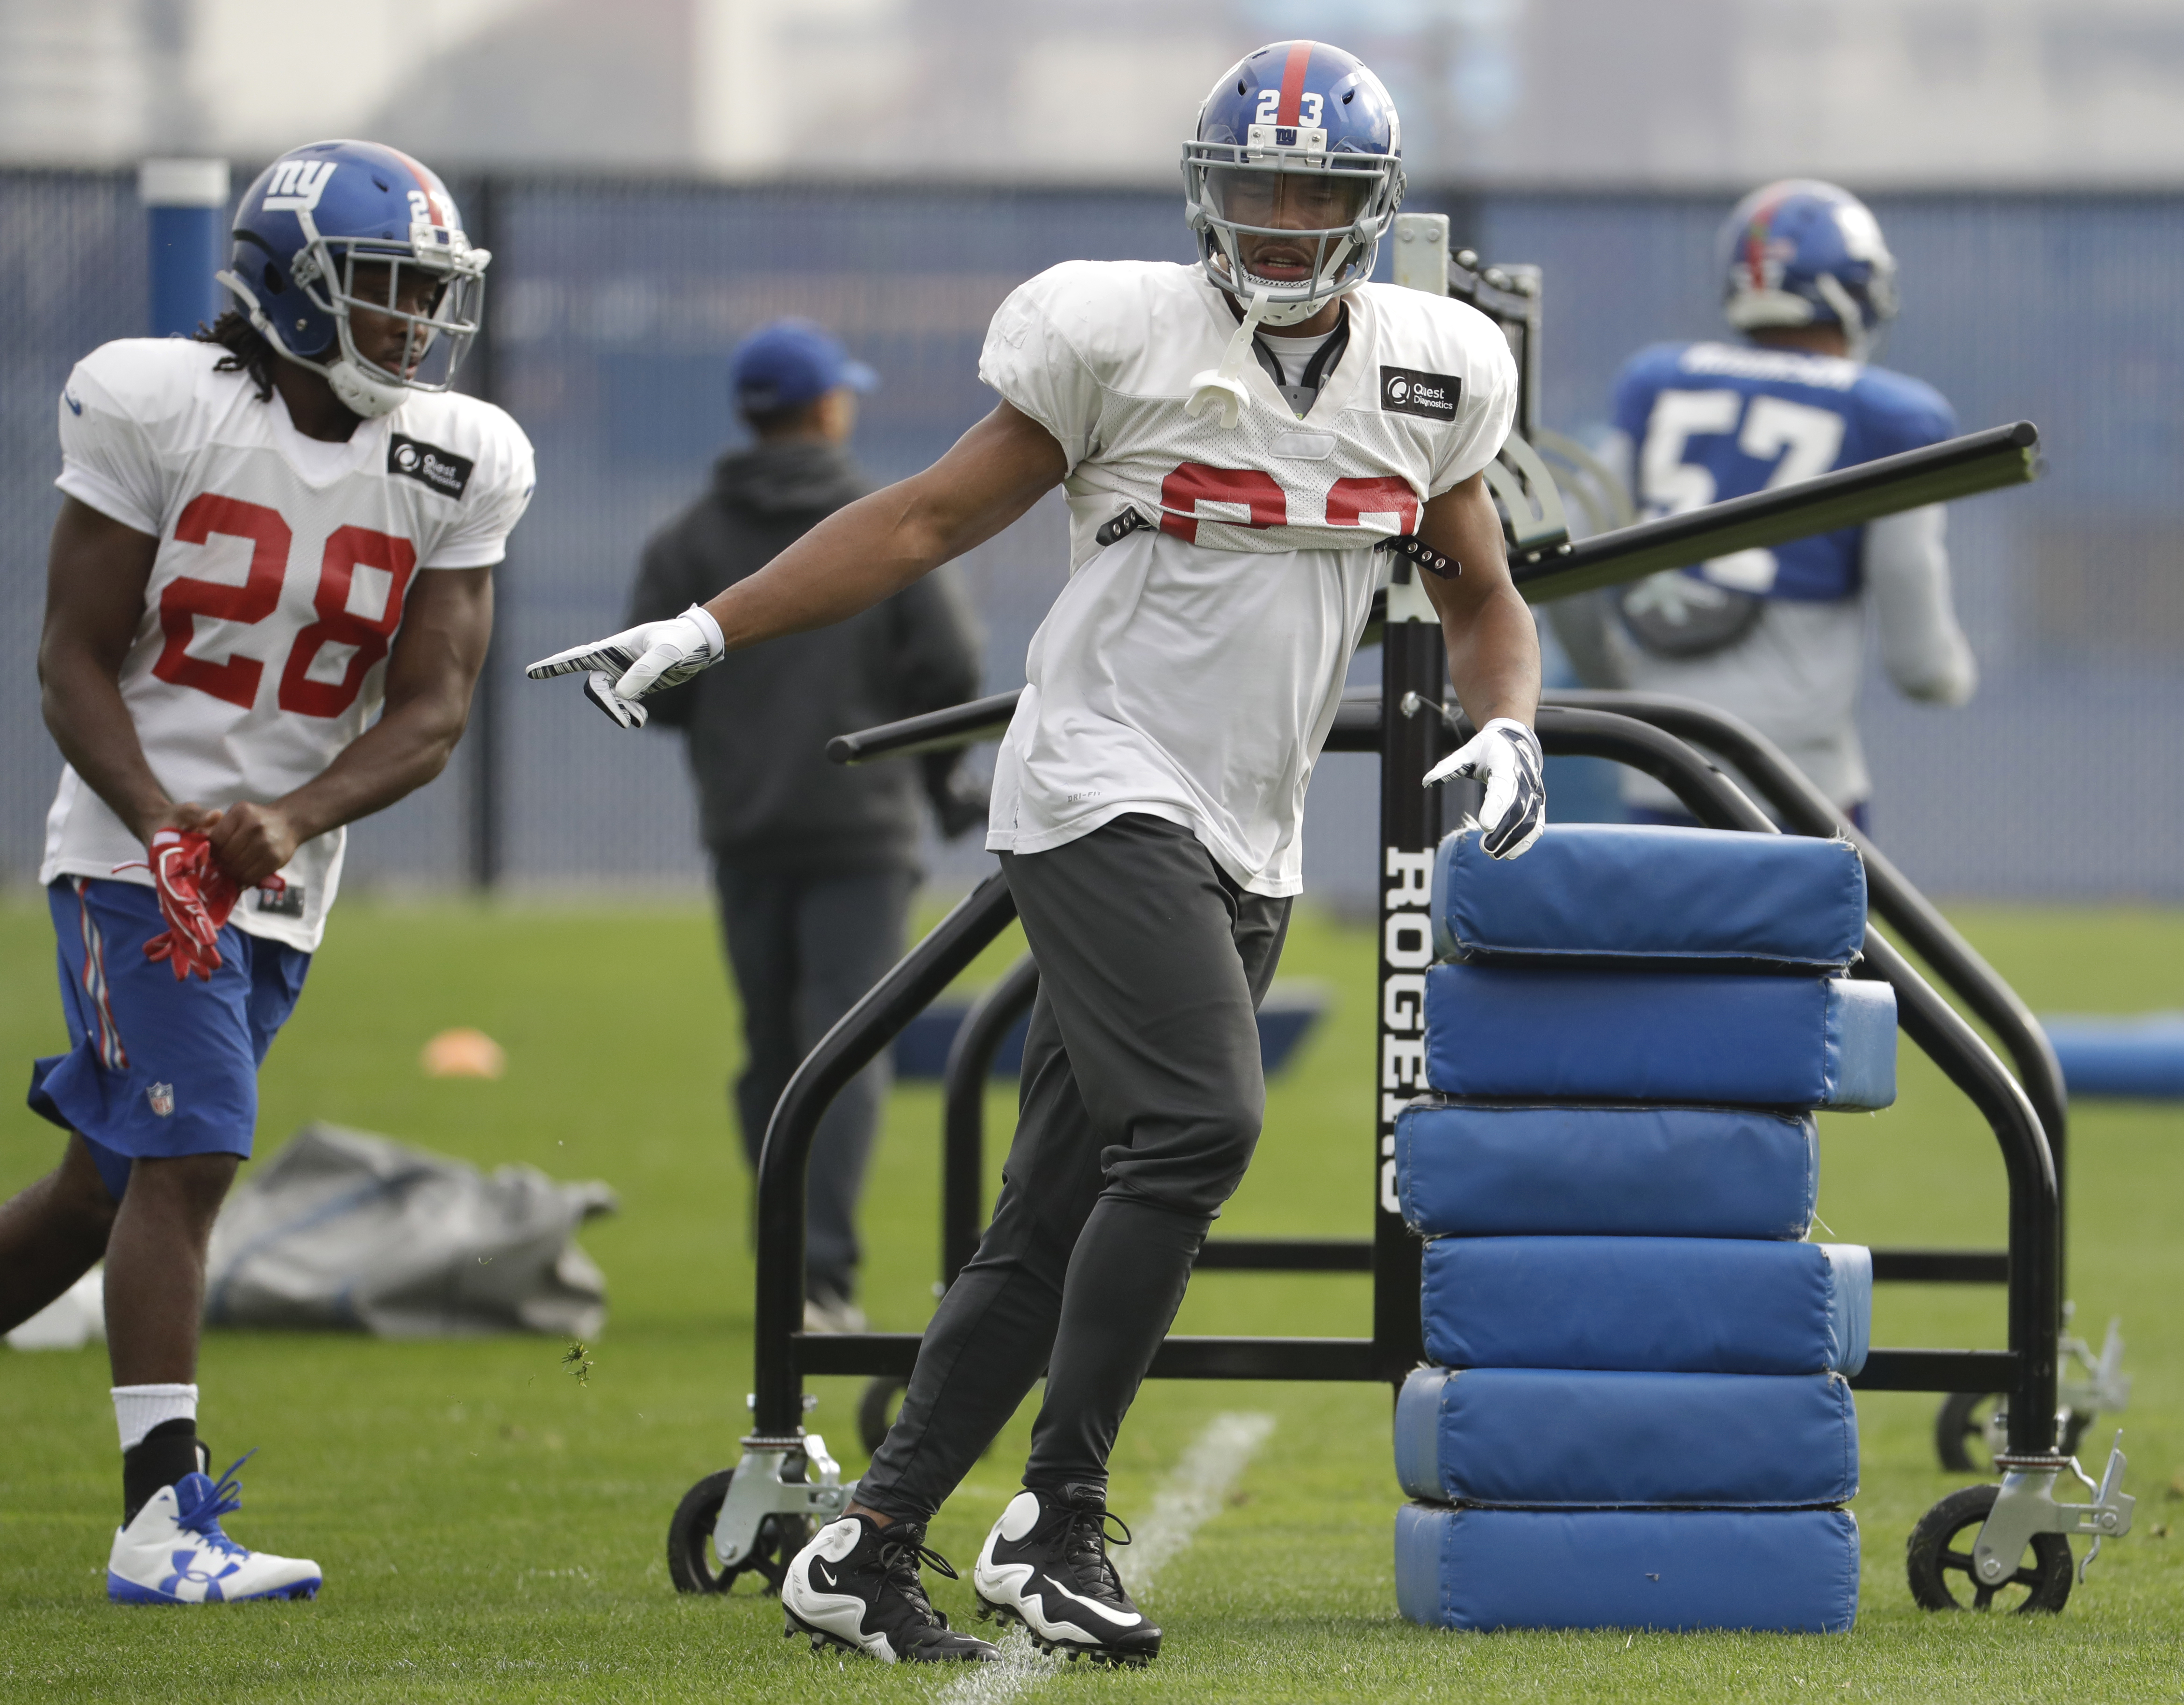 New York Giants running back Rashad Jennings, center, and running back Paul Perkins work out during NFL football practice, Thursday, Nov. 3, 2016, in East Rutherford, N.J. (AP Photo/Julio Cortez)